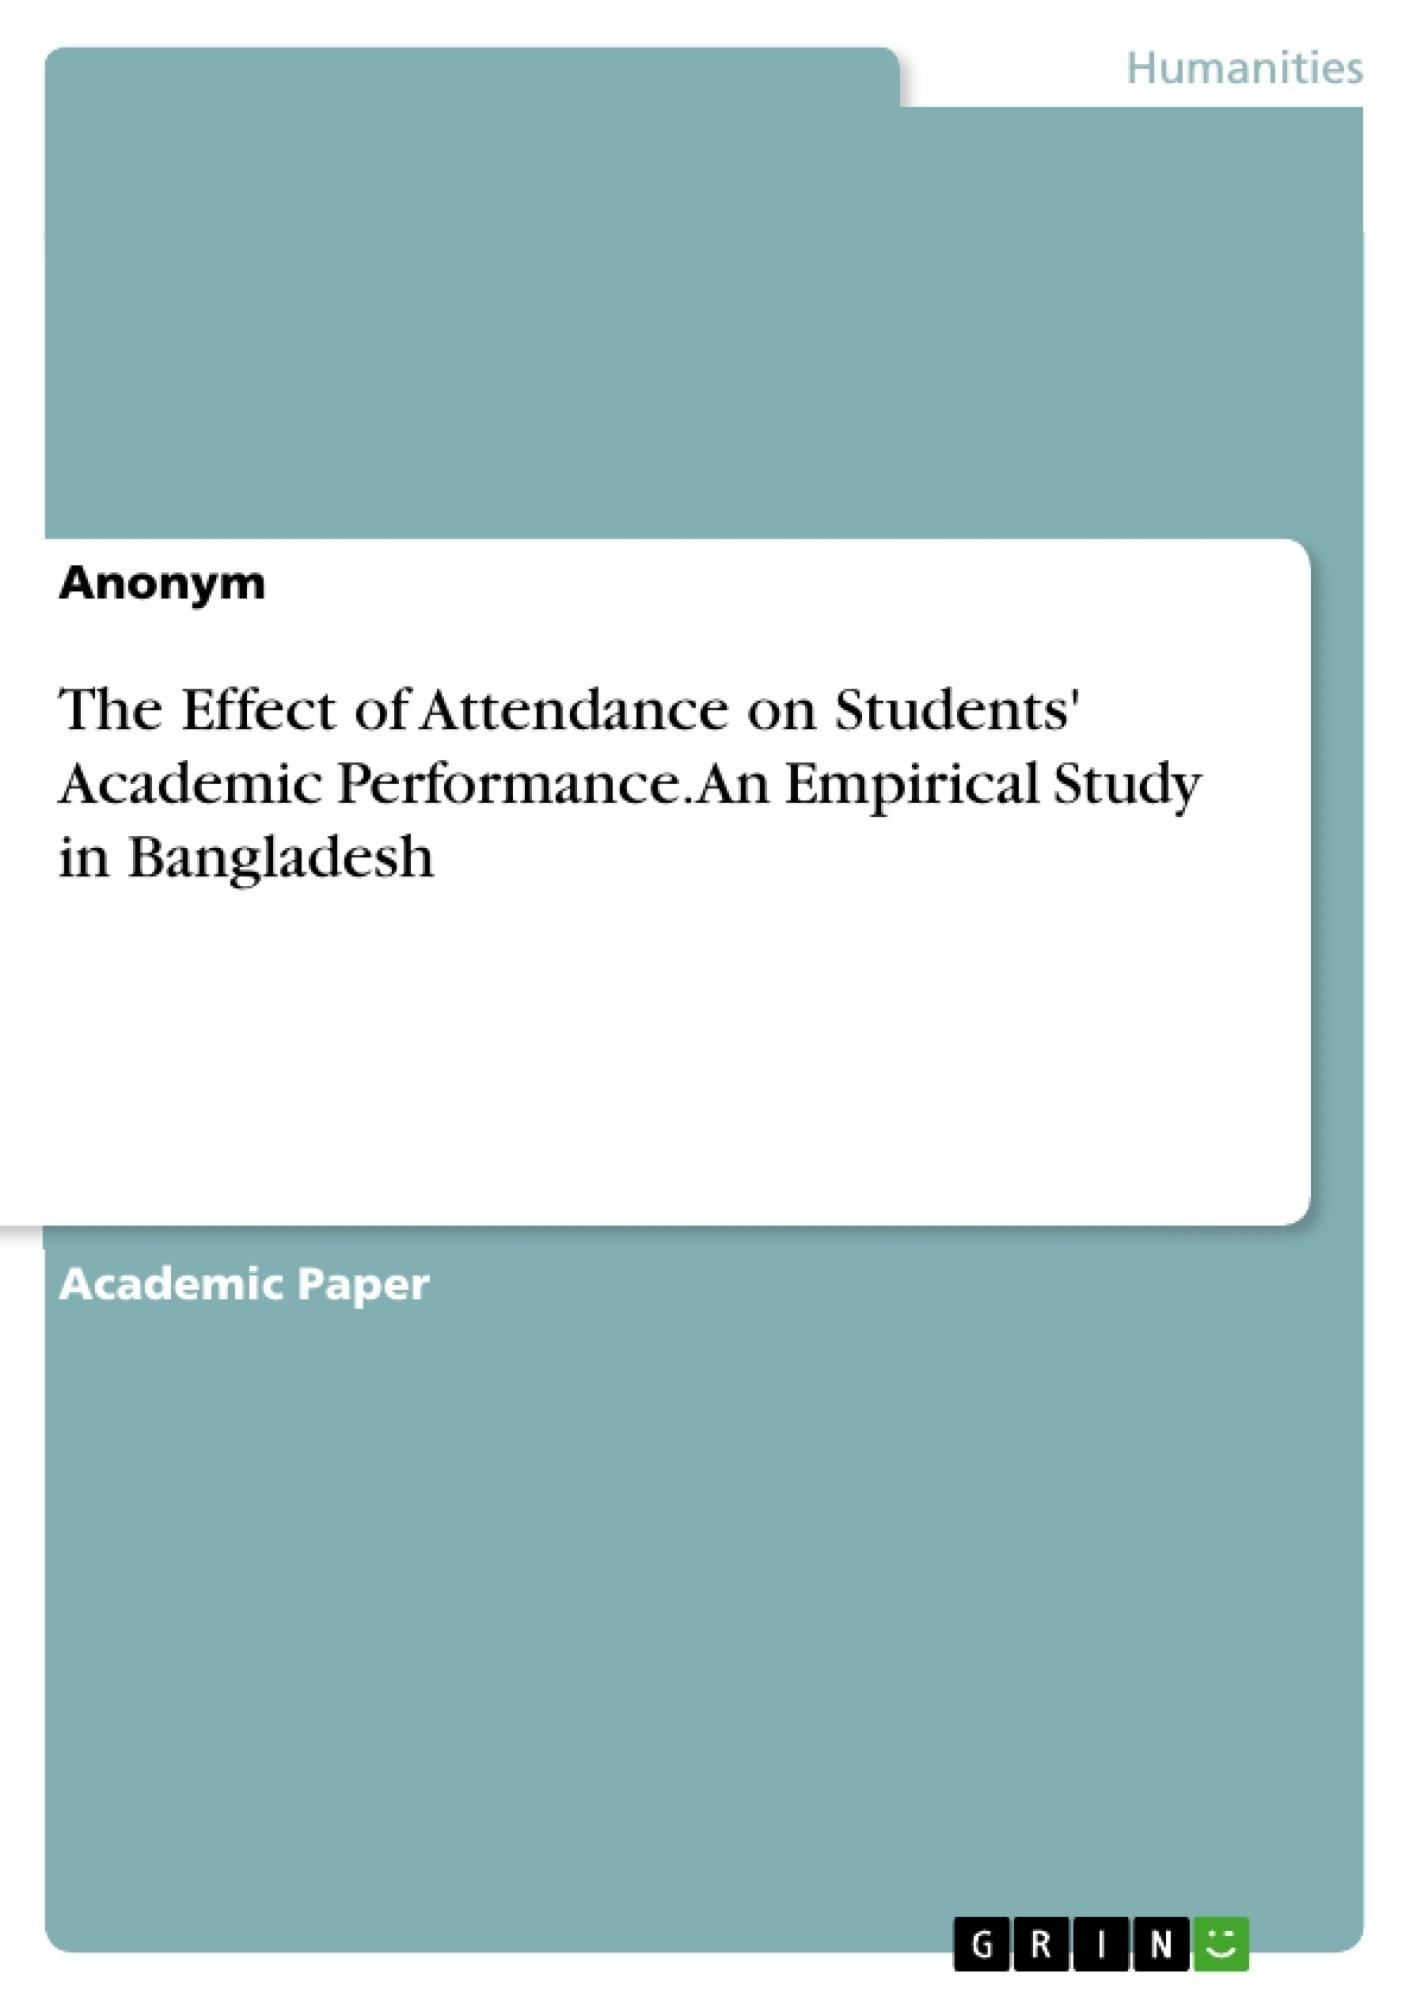 Title: The Effect of Attendance on Students' Academic Performance. An Empirical Study in Bangladesh